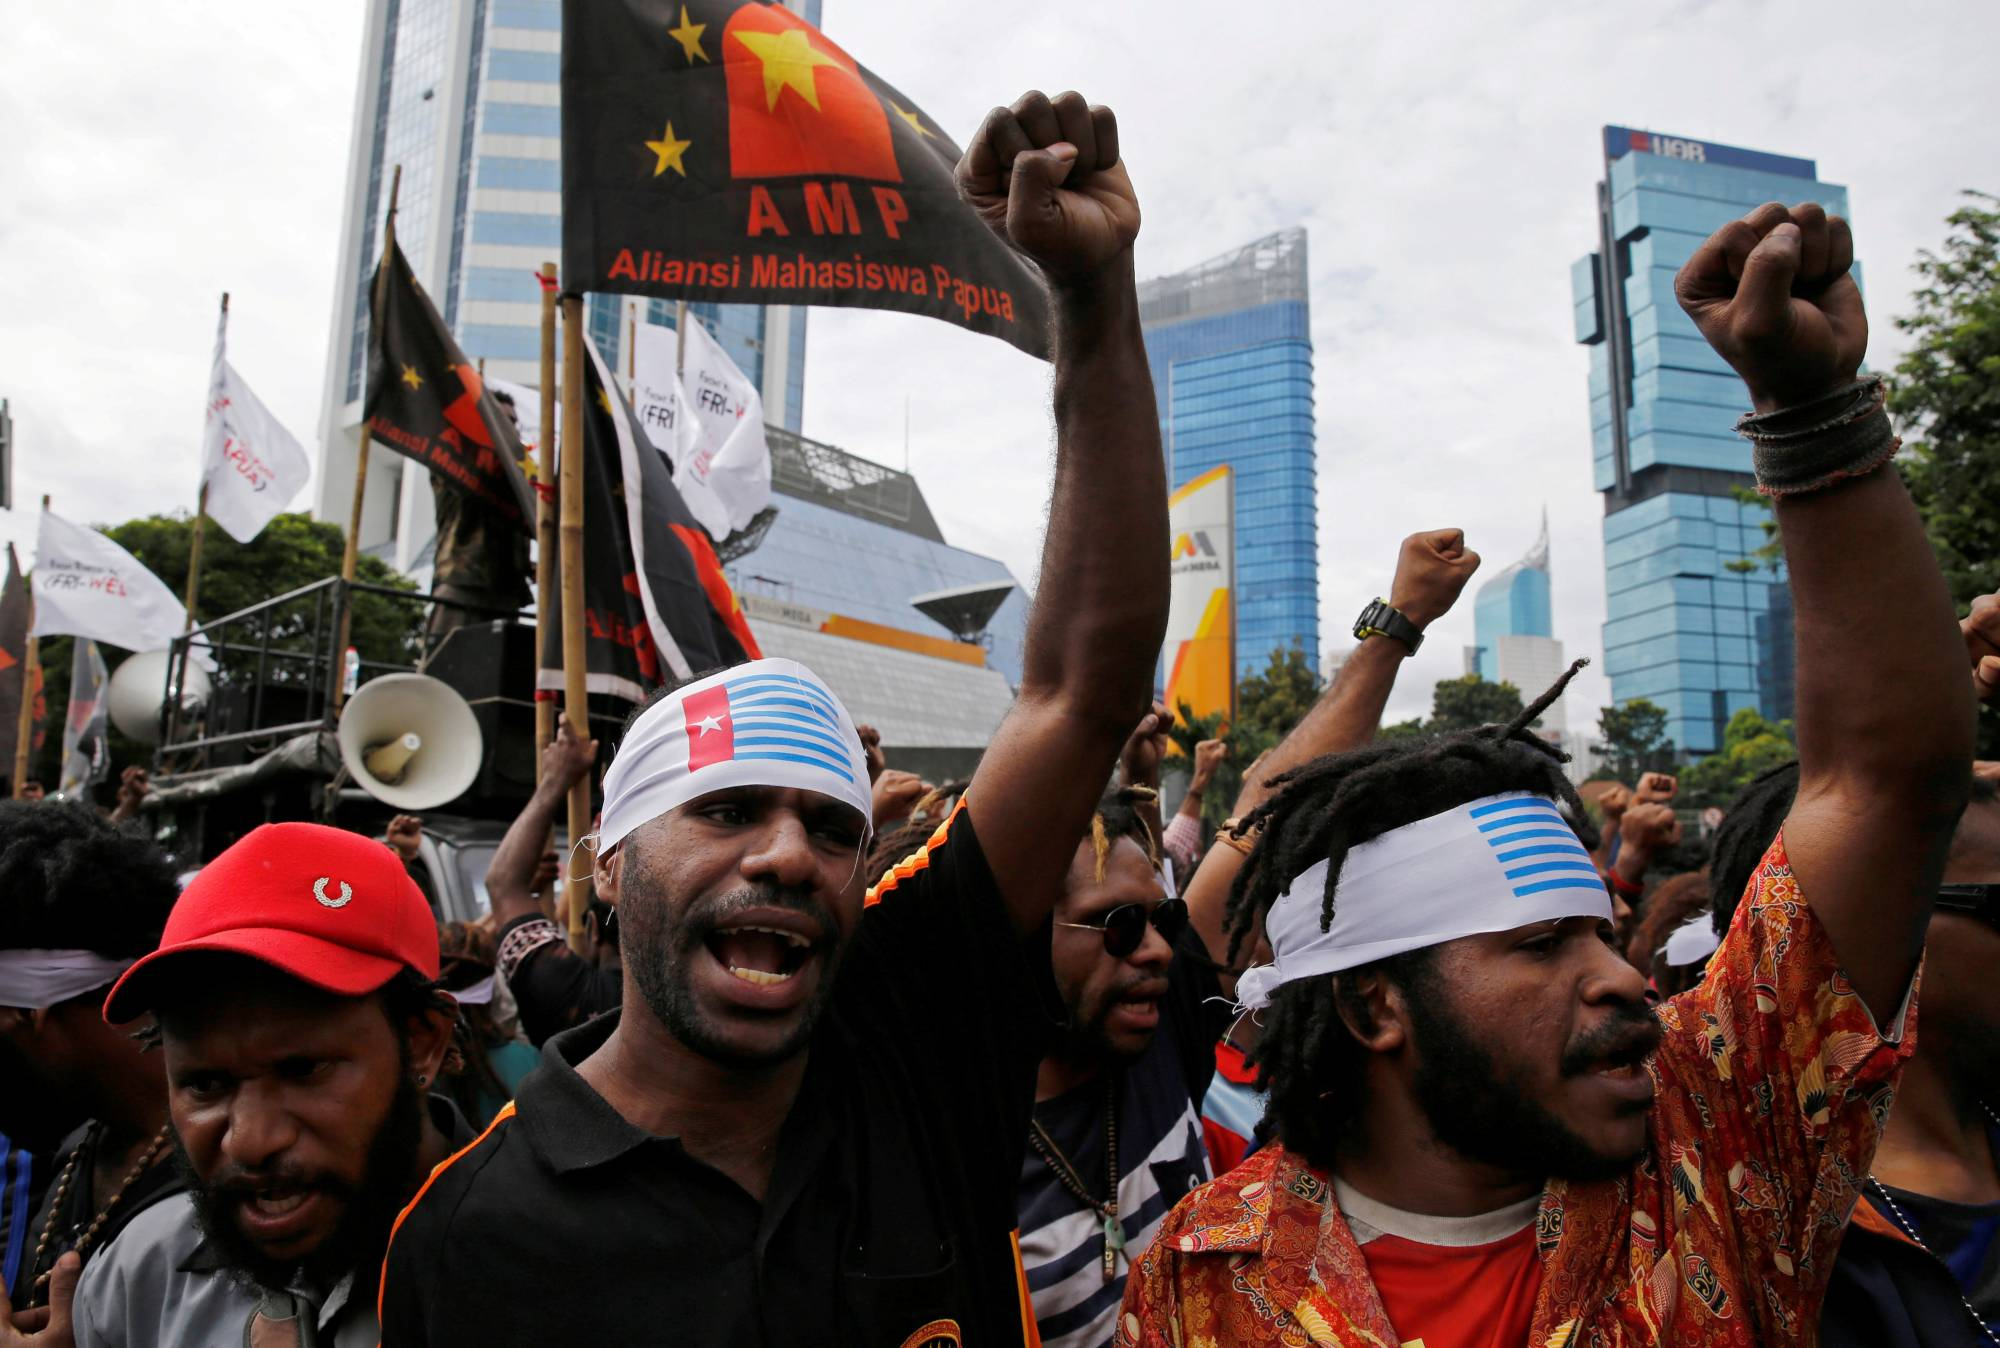 Protesters shout slogans during a rally calling for their right to self-determination in the Indonesian controlled part of Papua, in Jakarta in 2016. | REUTERS